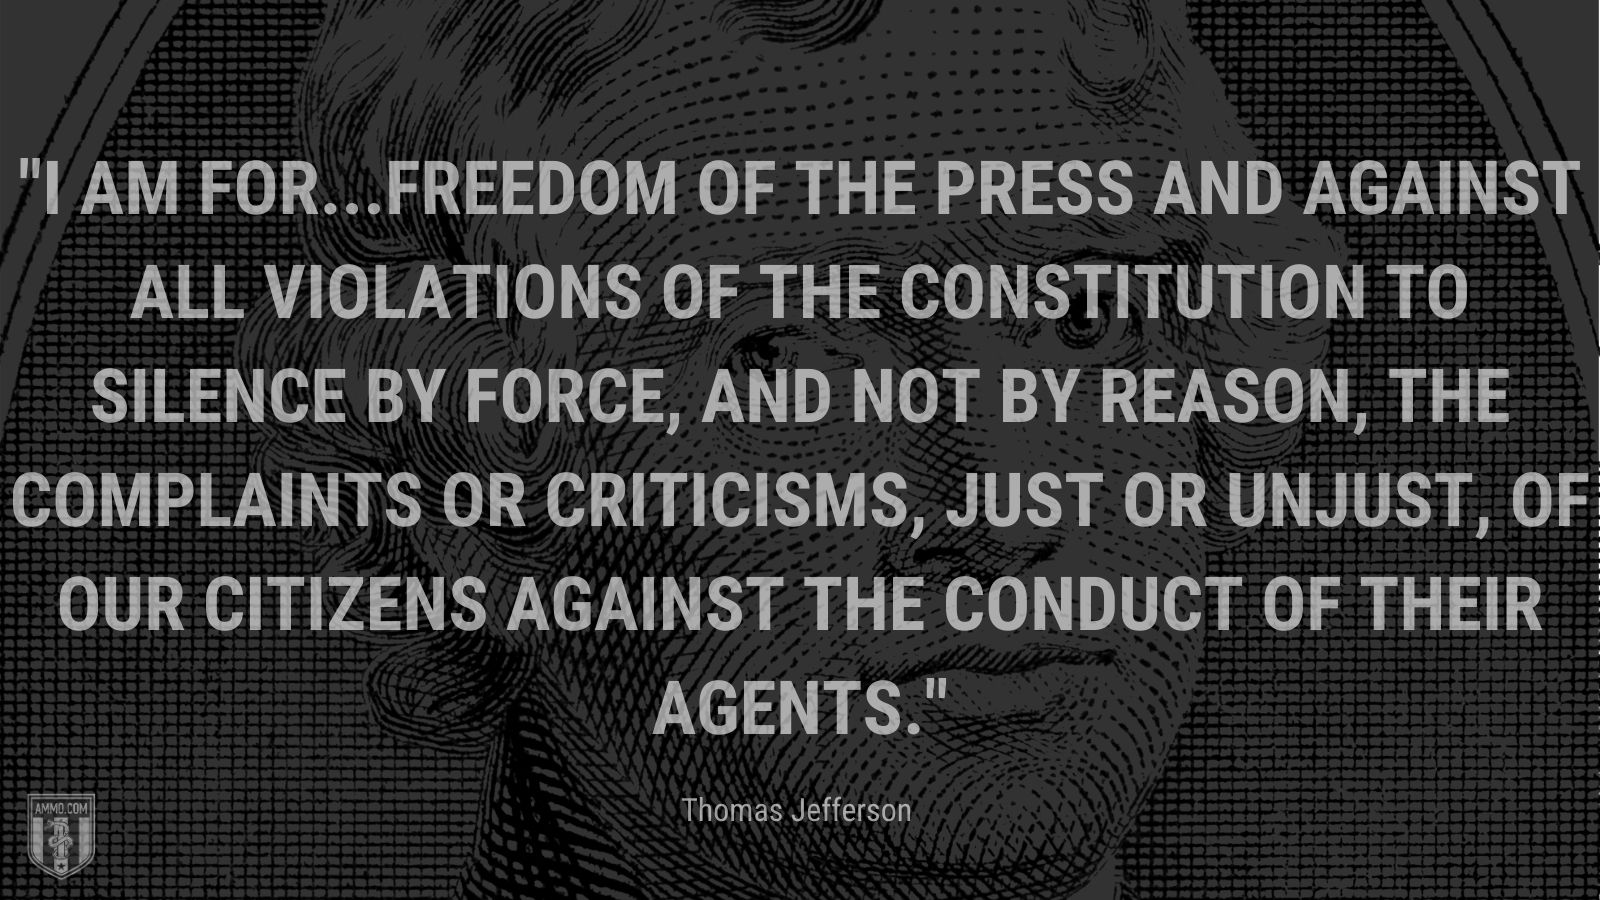 """""""I am for...freedom of the press and against all violations of the Constitution to silence by force, and not by reason, the complaints or criticisms, just or unjust, of our citizens against the conduct of their agents."""" - Thomas Jefferson"""